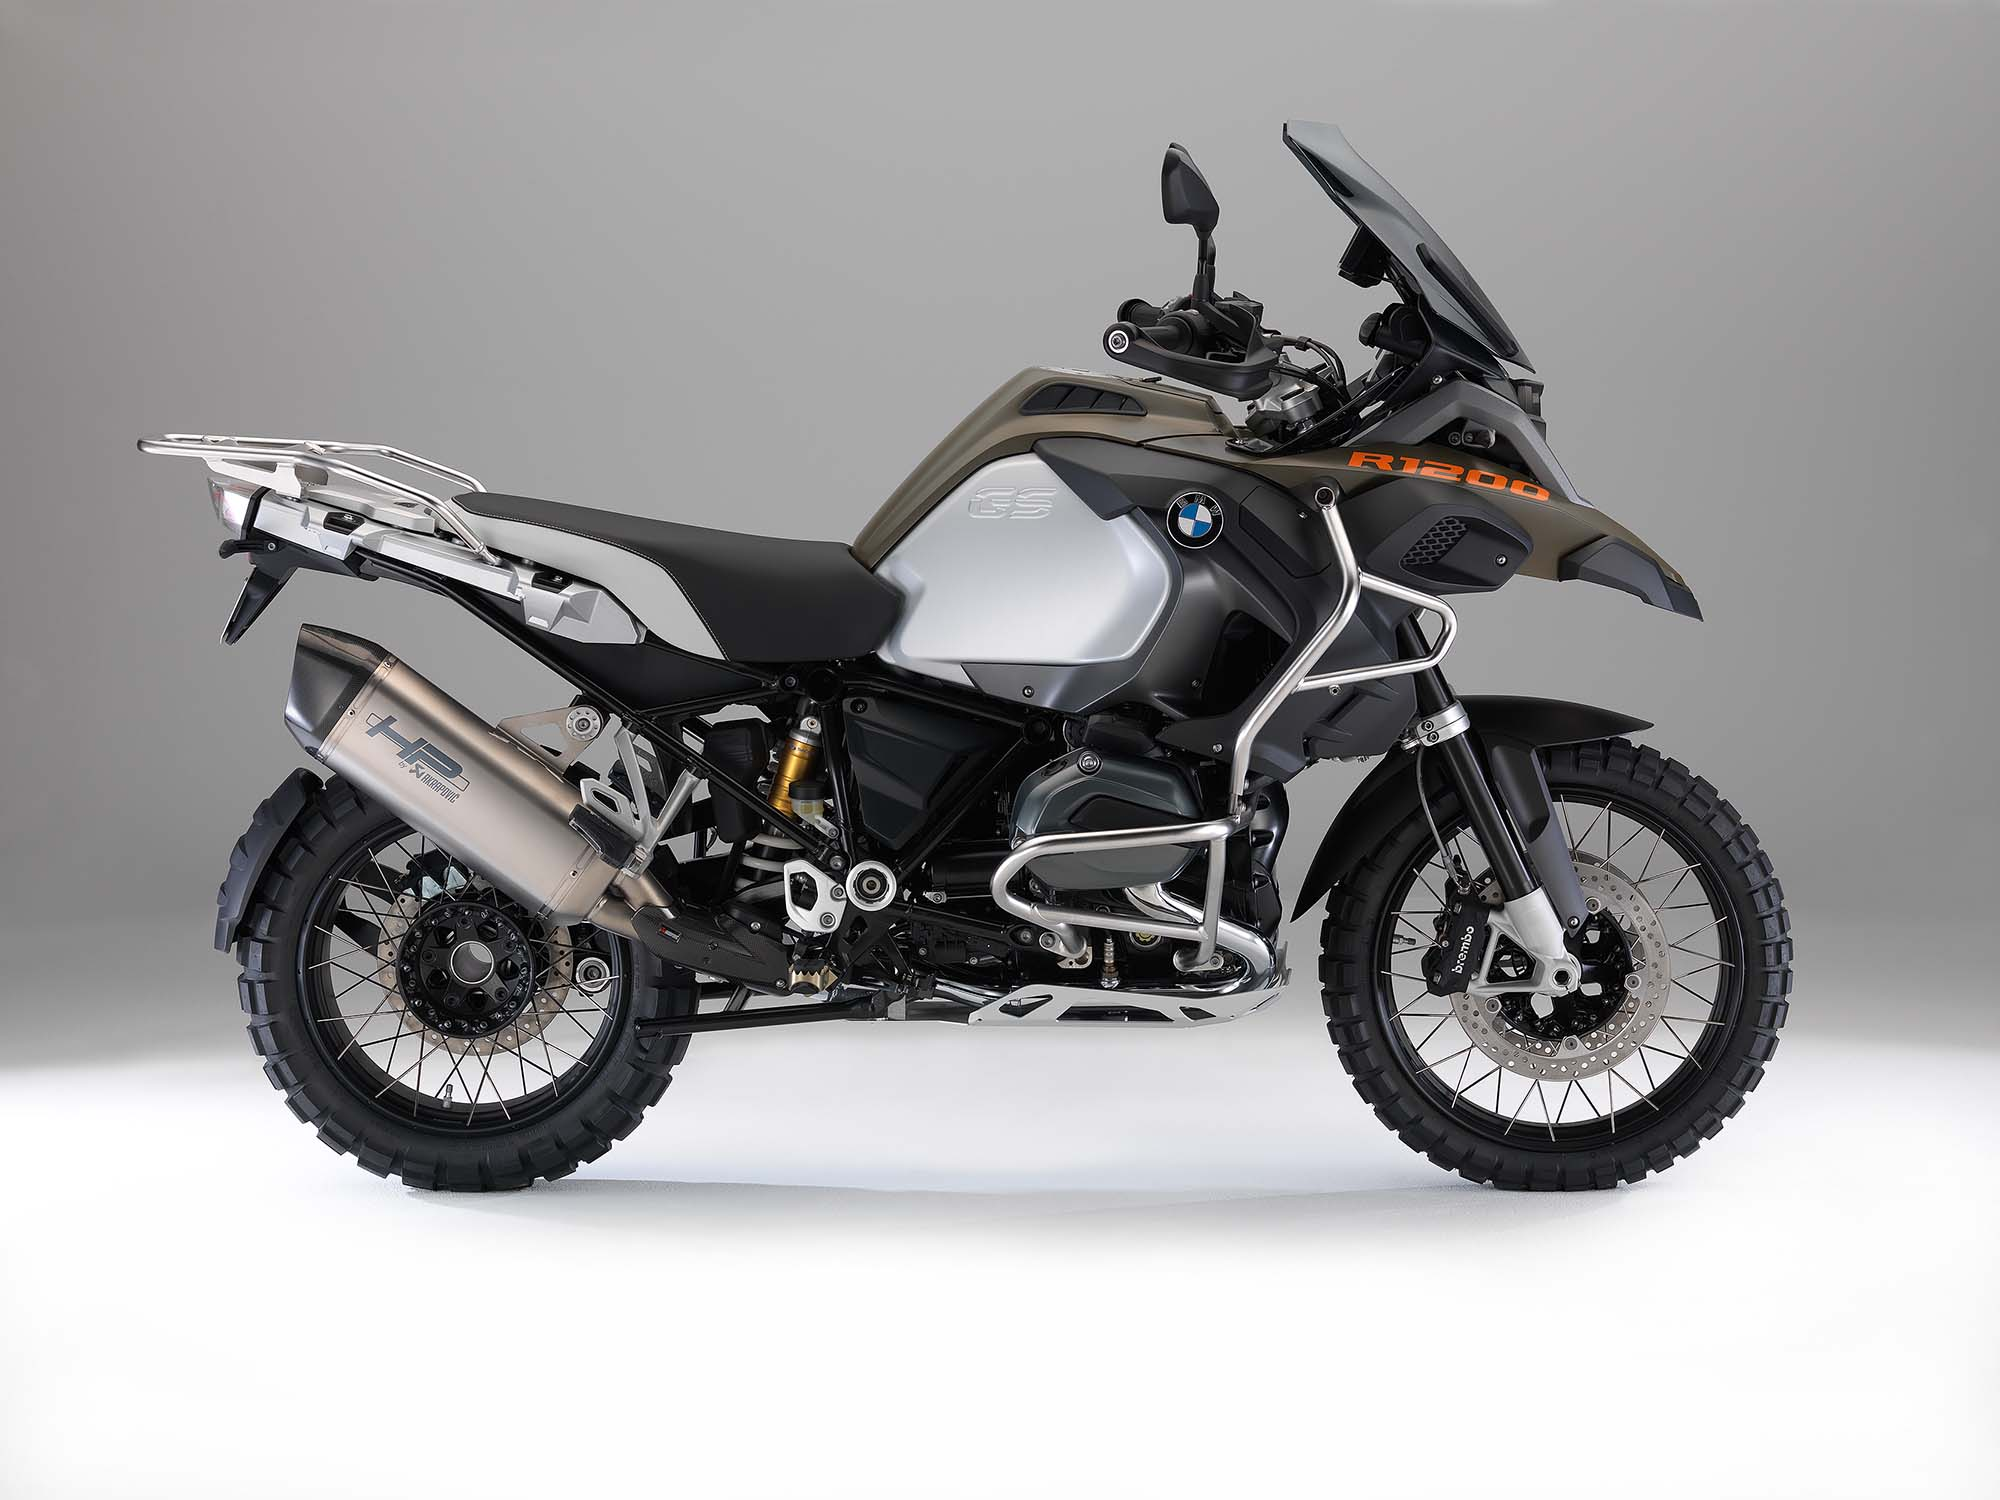 Image result for BMW R1200GS